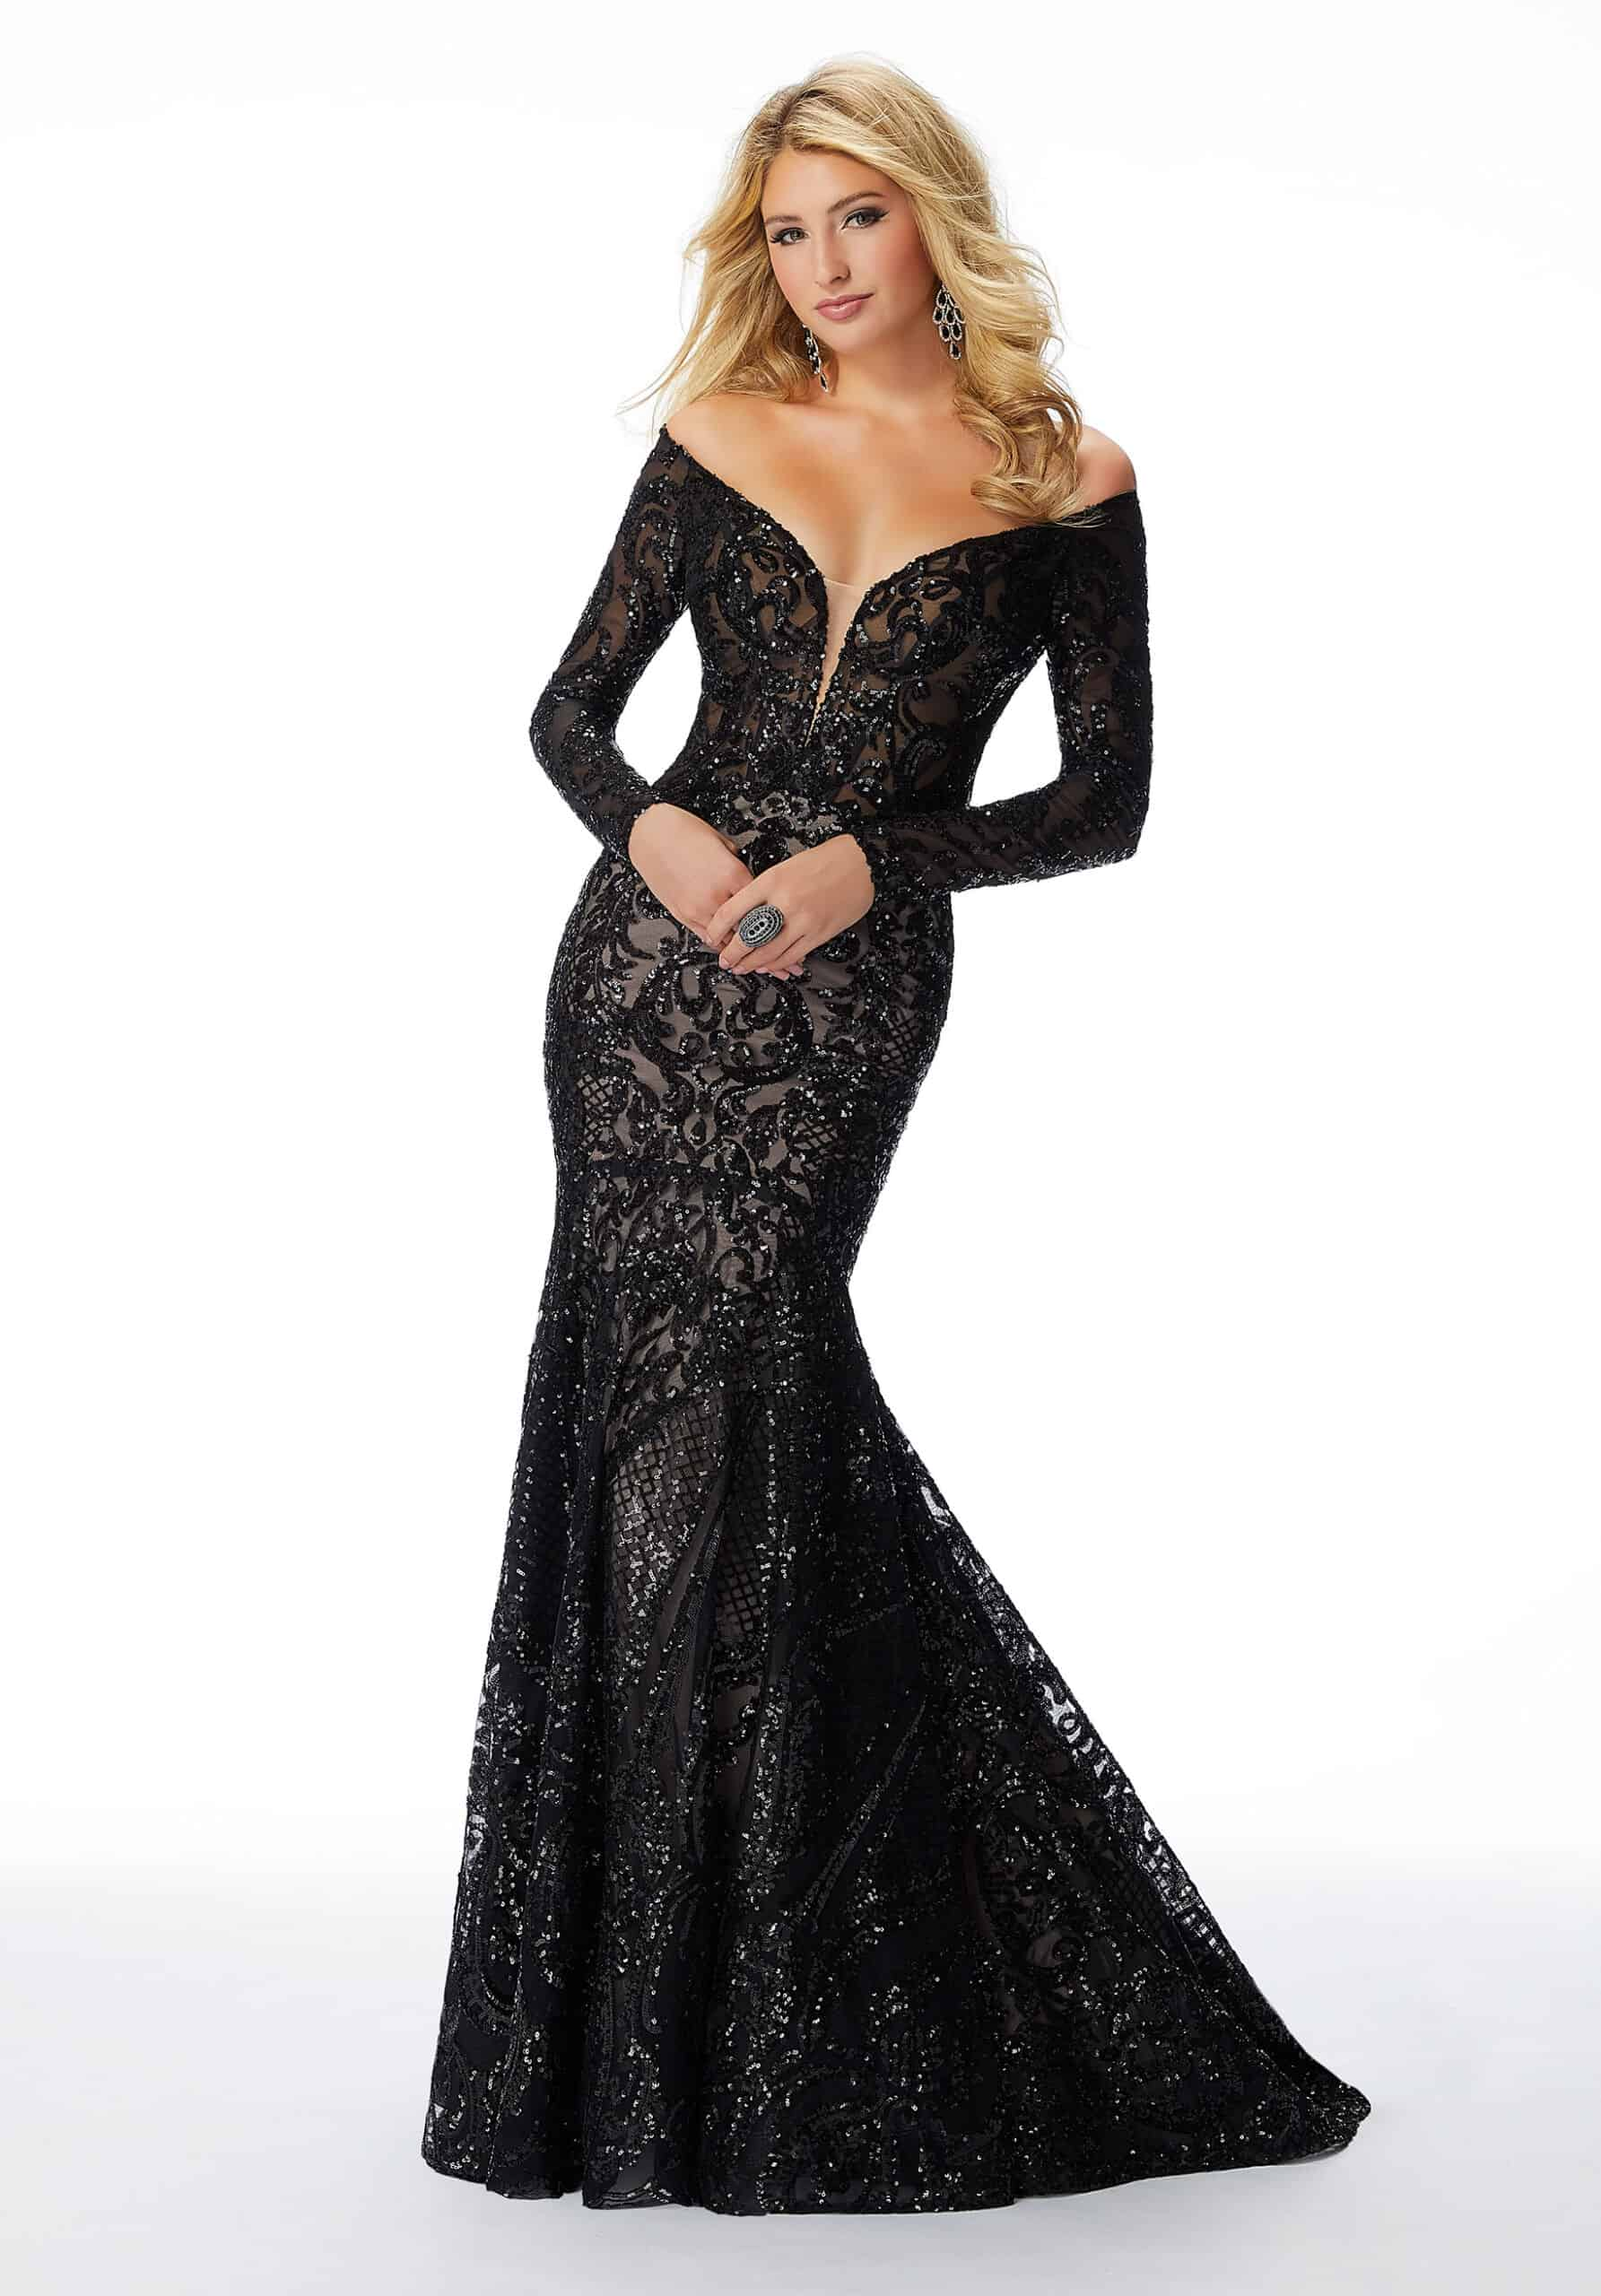 Prom Gown Featuring Off-the-shoulder Long Sleeves, Shimmering Patterned Sequin On Net, And Keyhole Back Detail.